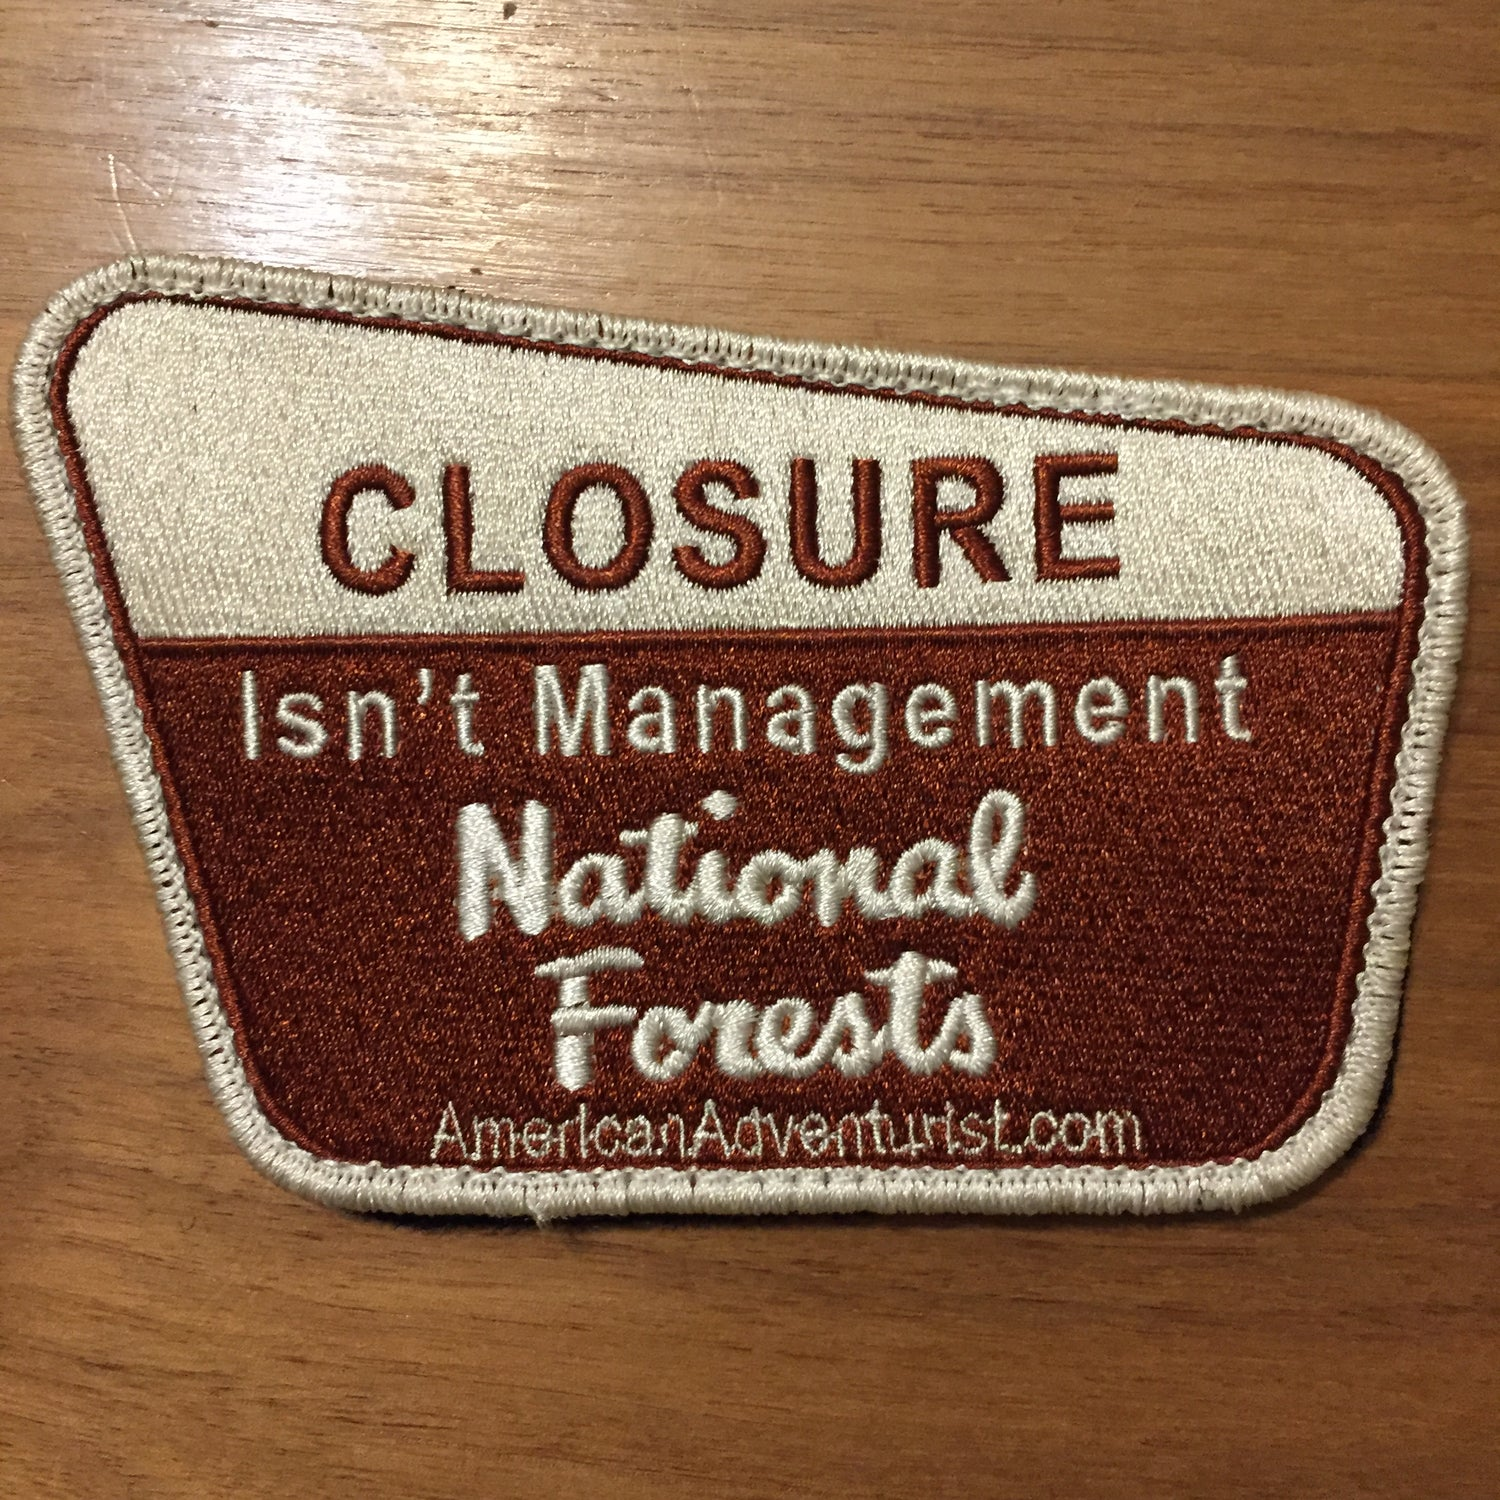 Image of NP Closure Isn't Management Patch